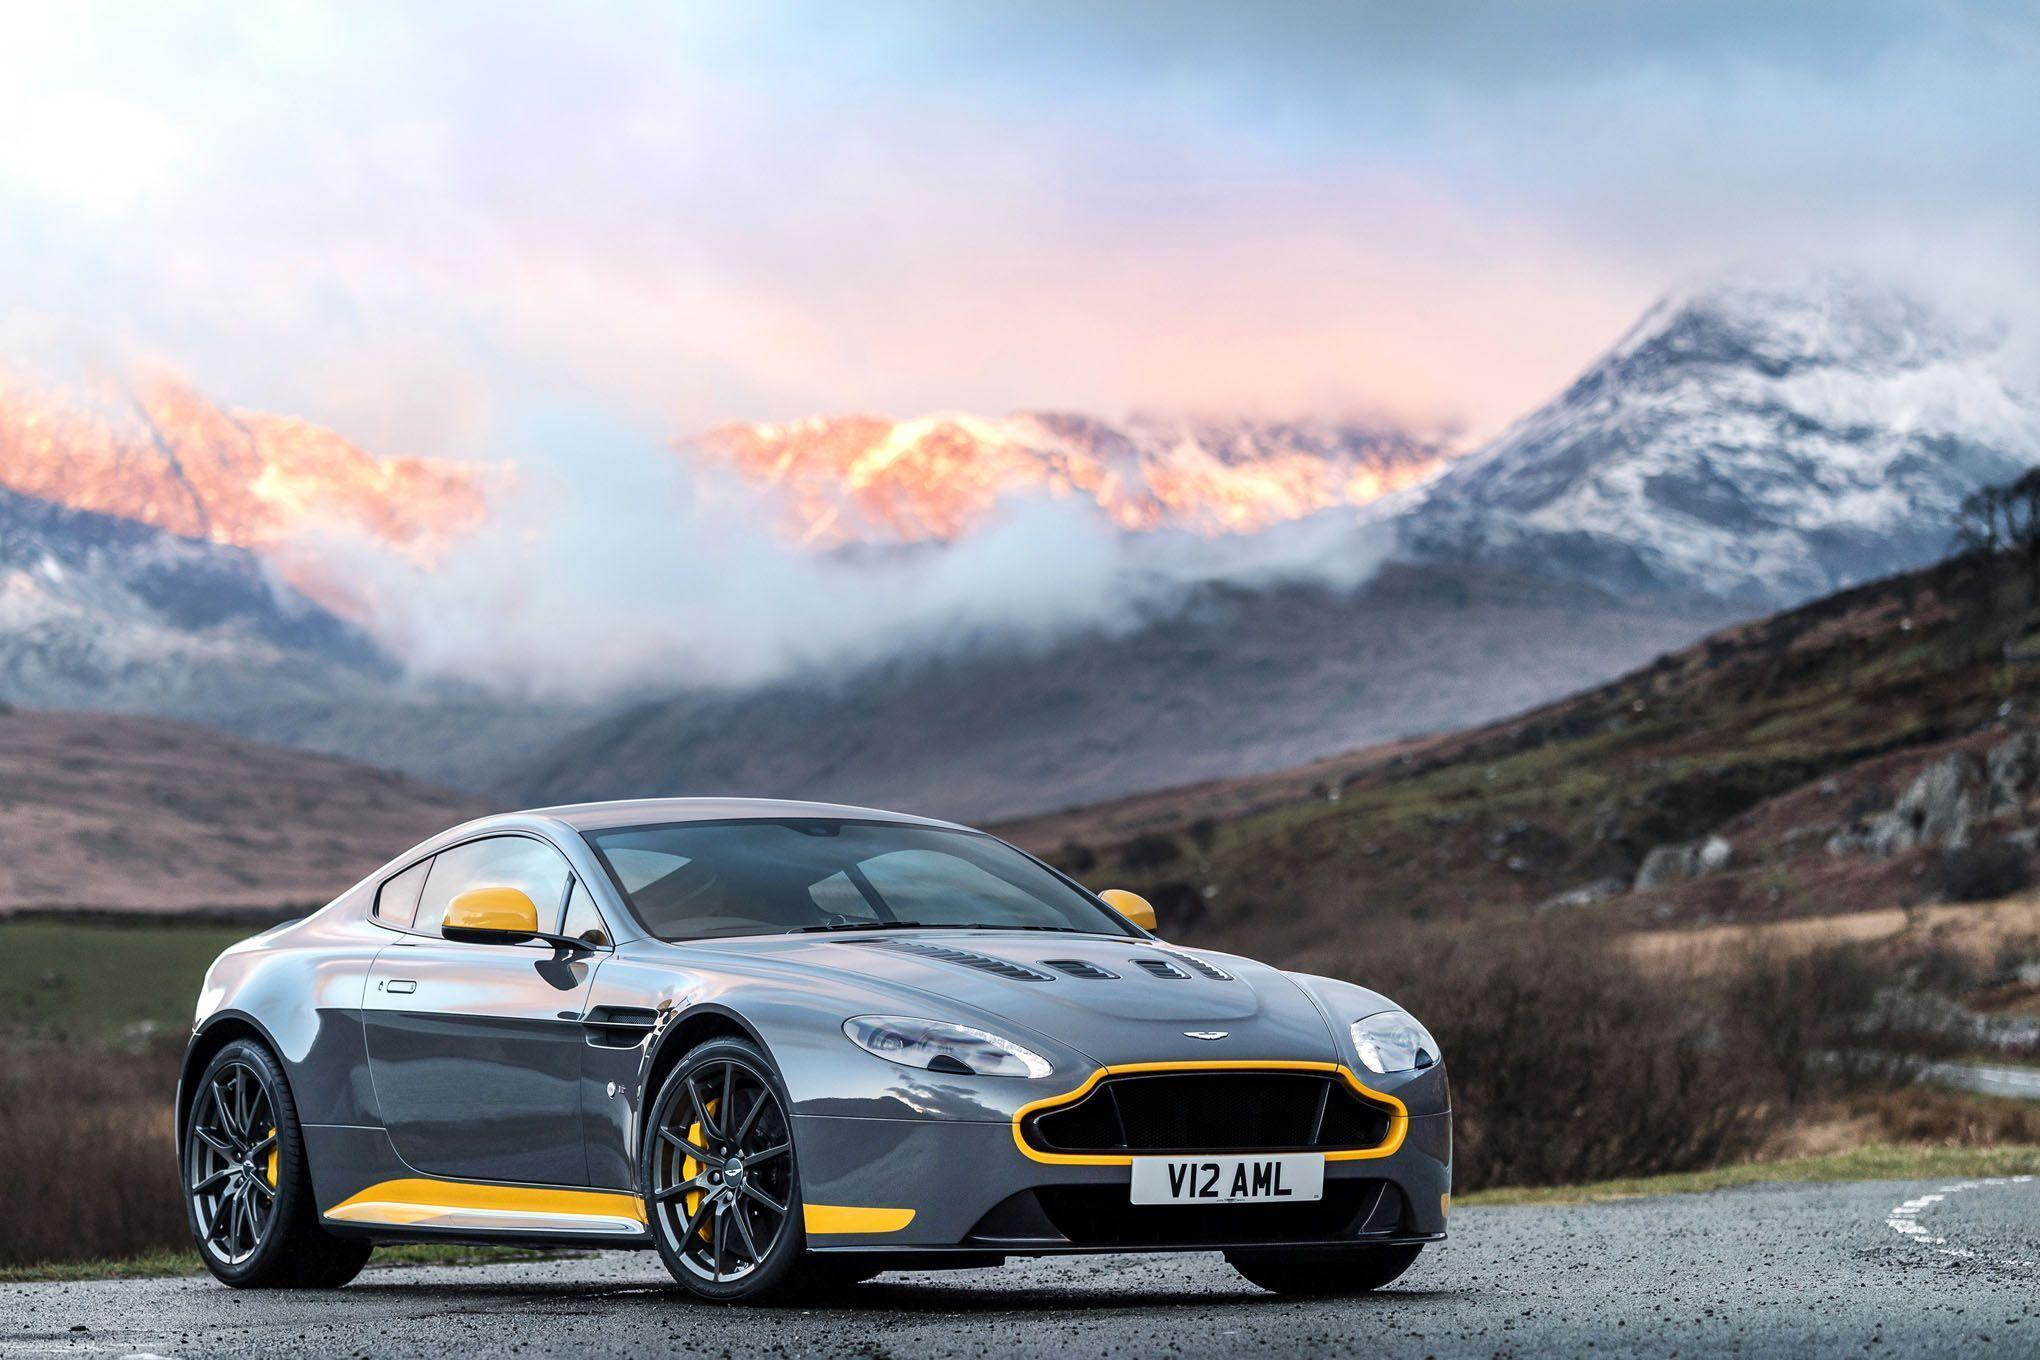 2017 Aston Martin V12 Vantage S Desktop Wallpapers